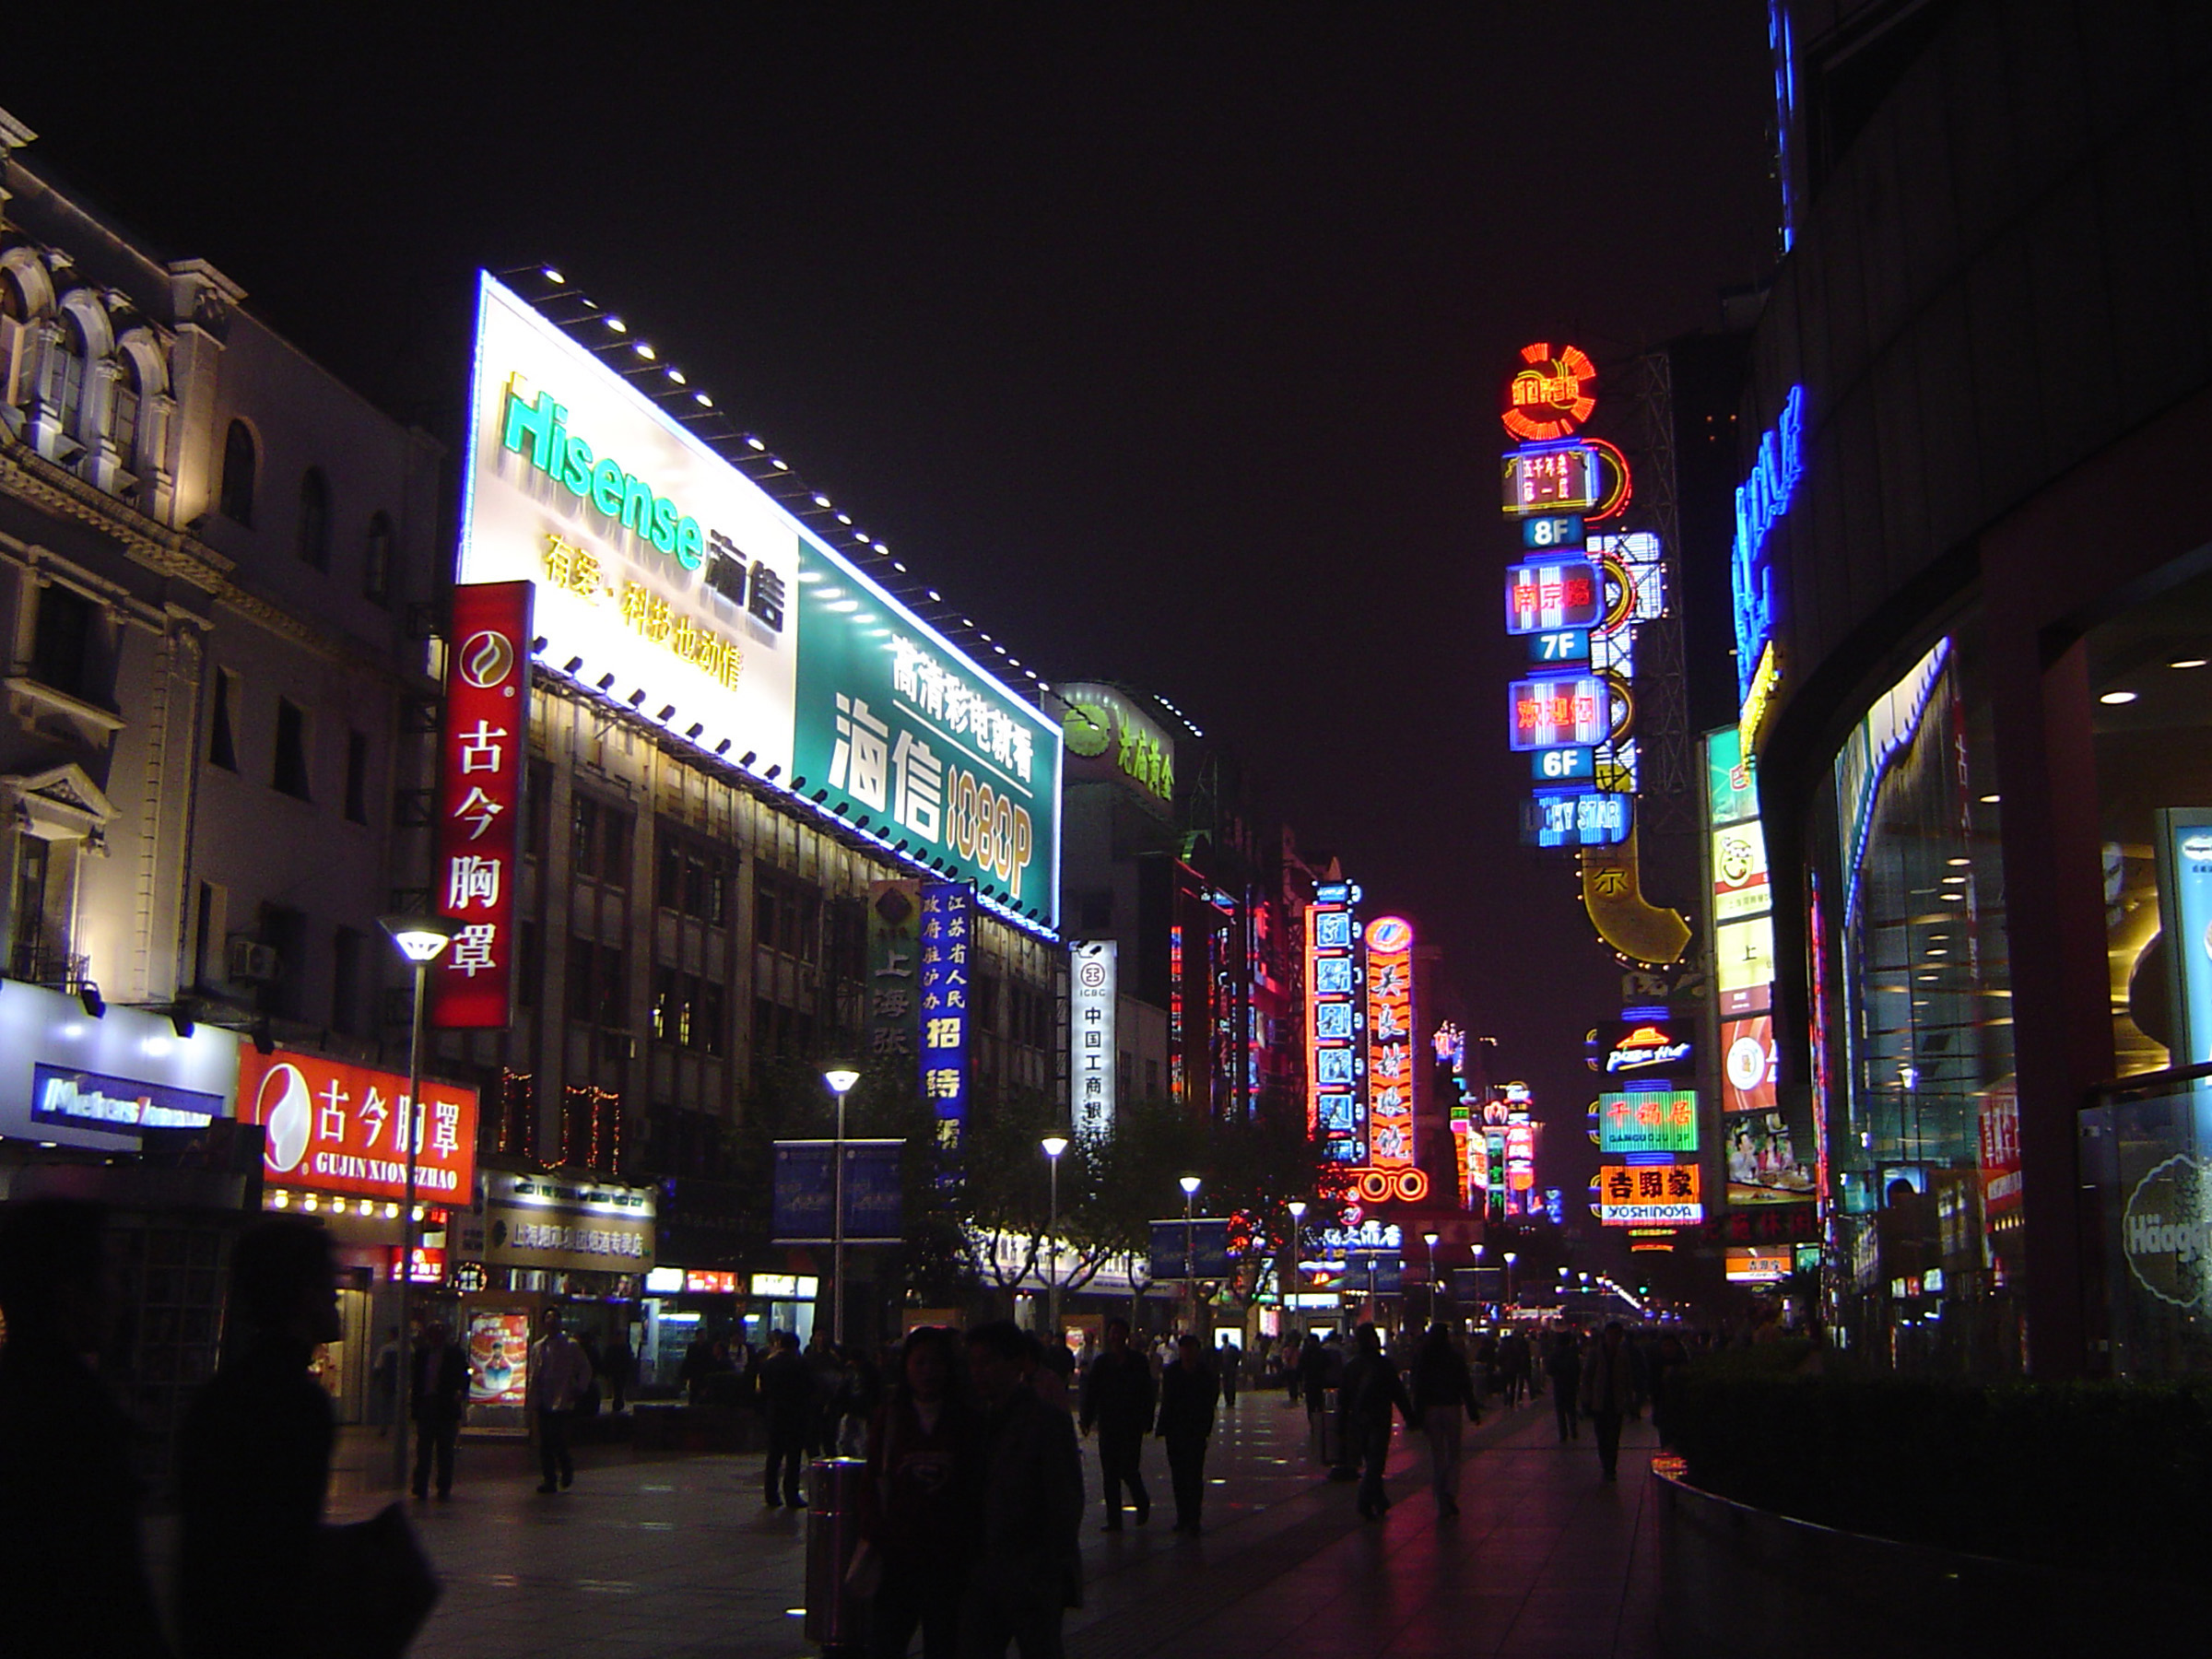 Attractive City Neon Lights From Various Commercial Buildings at Night Time in China.